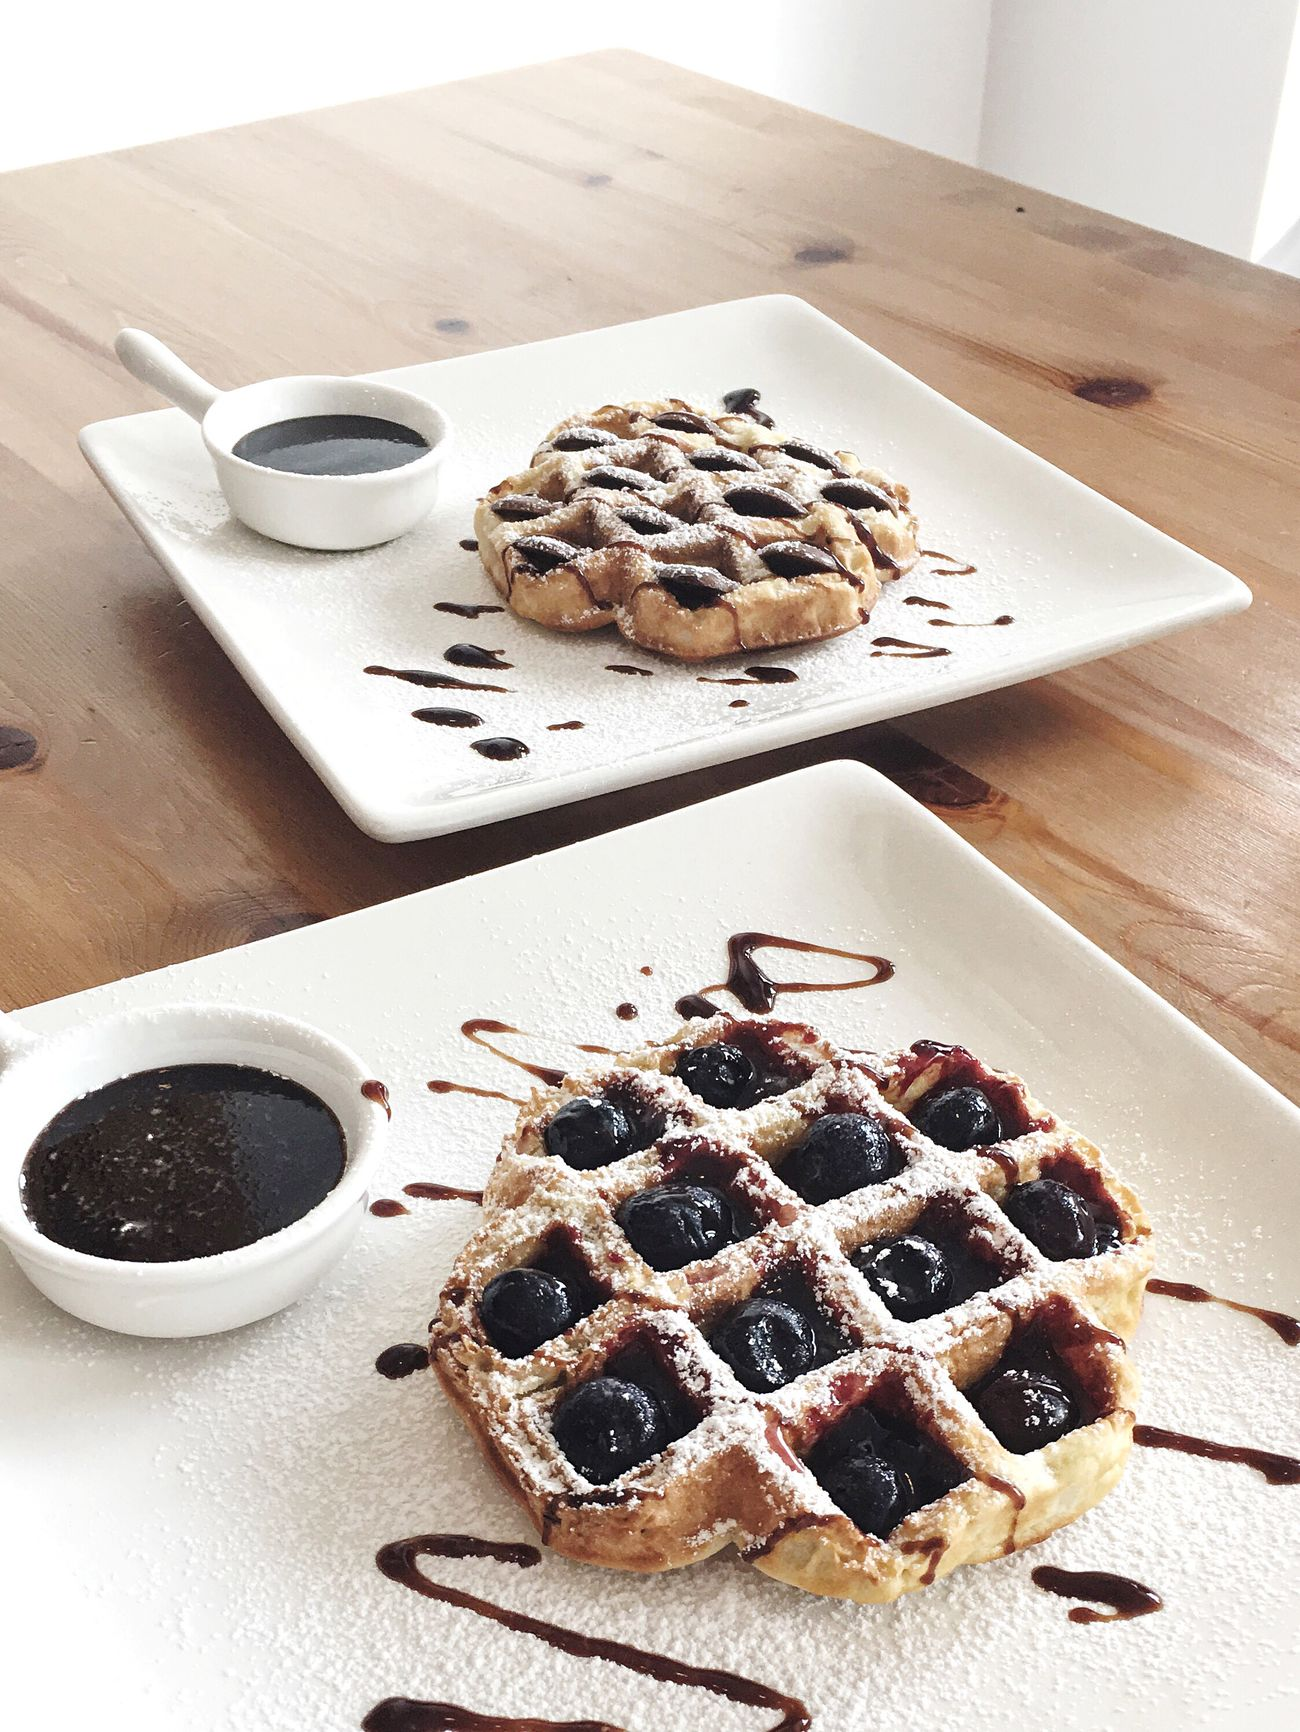 Waffles Dessert Food Yummy Auckland NZ Cafe Lunch Icing Sugar Blueberries Chocolate Buttons Sweet Food Spring Chocolate Sauce White White Plate Bright Light